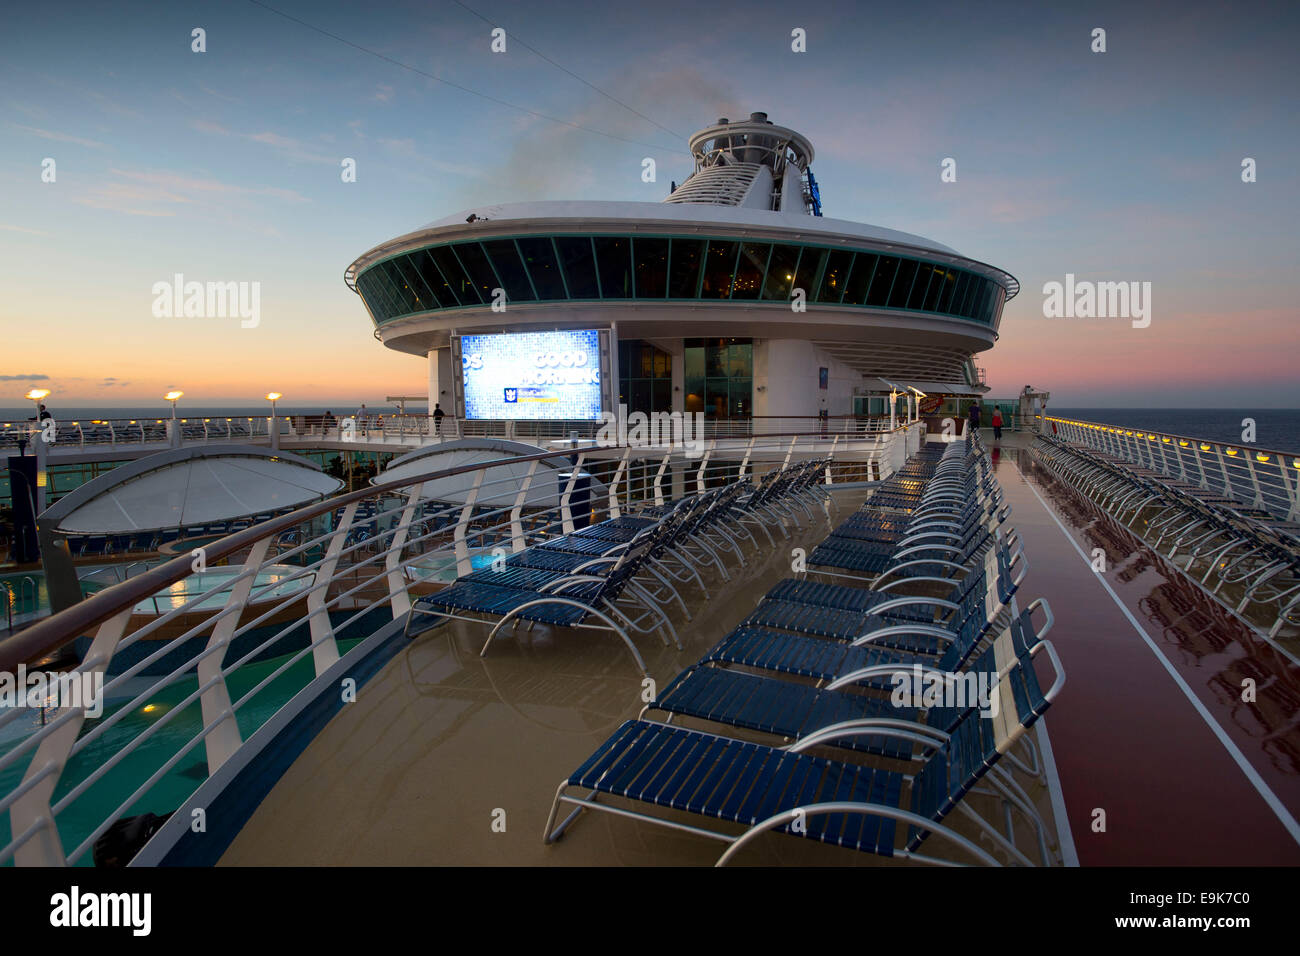 The deck of the Adventurer of the Seas cruise ship operated by Royal Caribbean International. - Stock Image